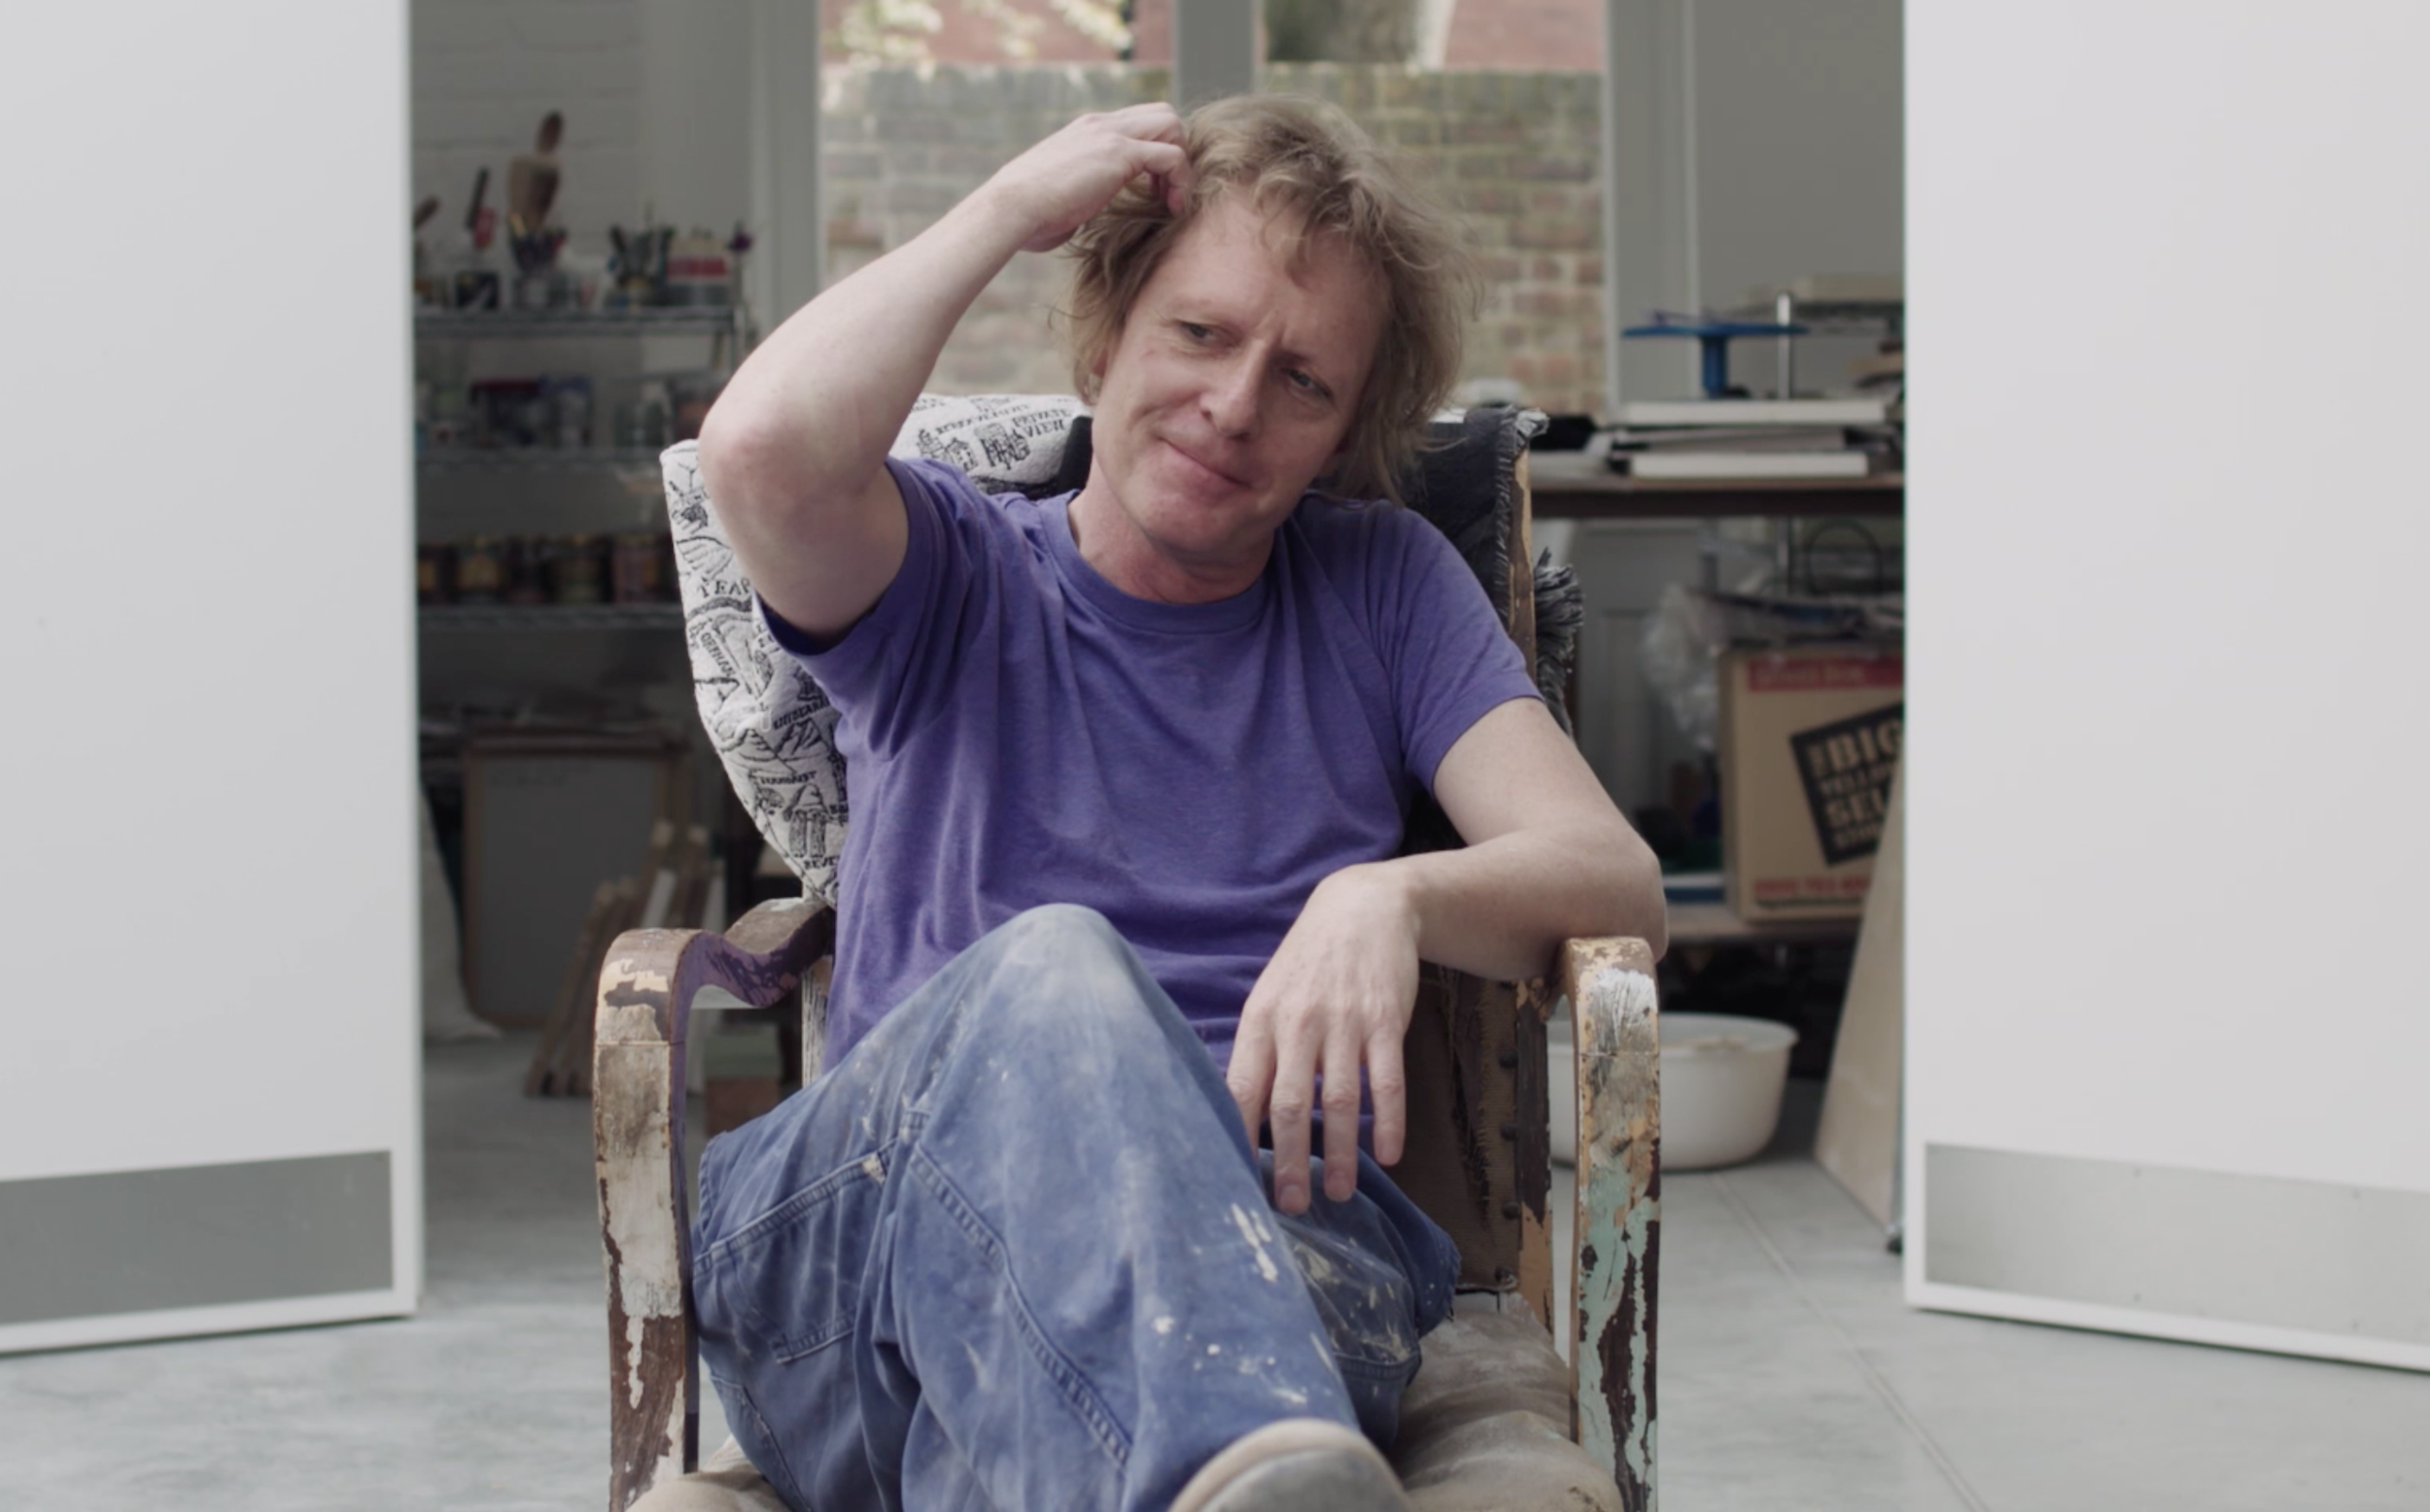 Grayson Perry promotes an exhibition in a purpose-made trailer